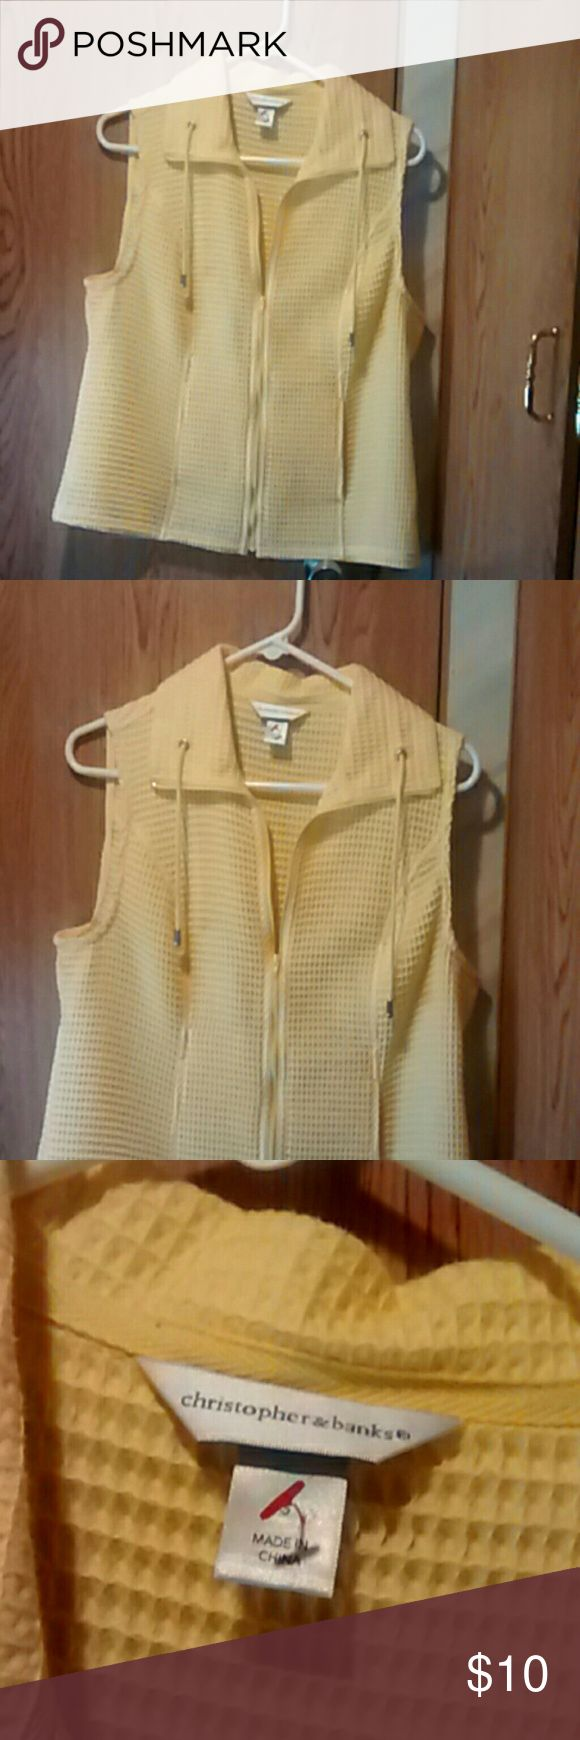 Yellow vest Zip up waffle weave vest by Christopher and Banks. Color is closest to 3rd picture. Vibrant yellow. Size Small. Excellent preowned condition. Smoking/pet home Offers and questions are welcome. Christopher & Banks Jackets & Coats Vests